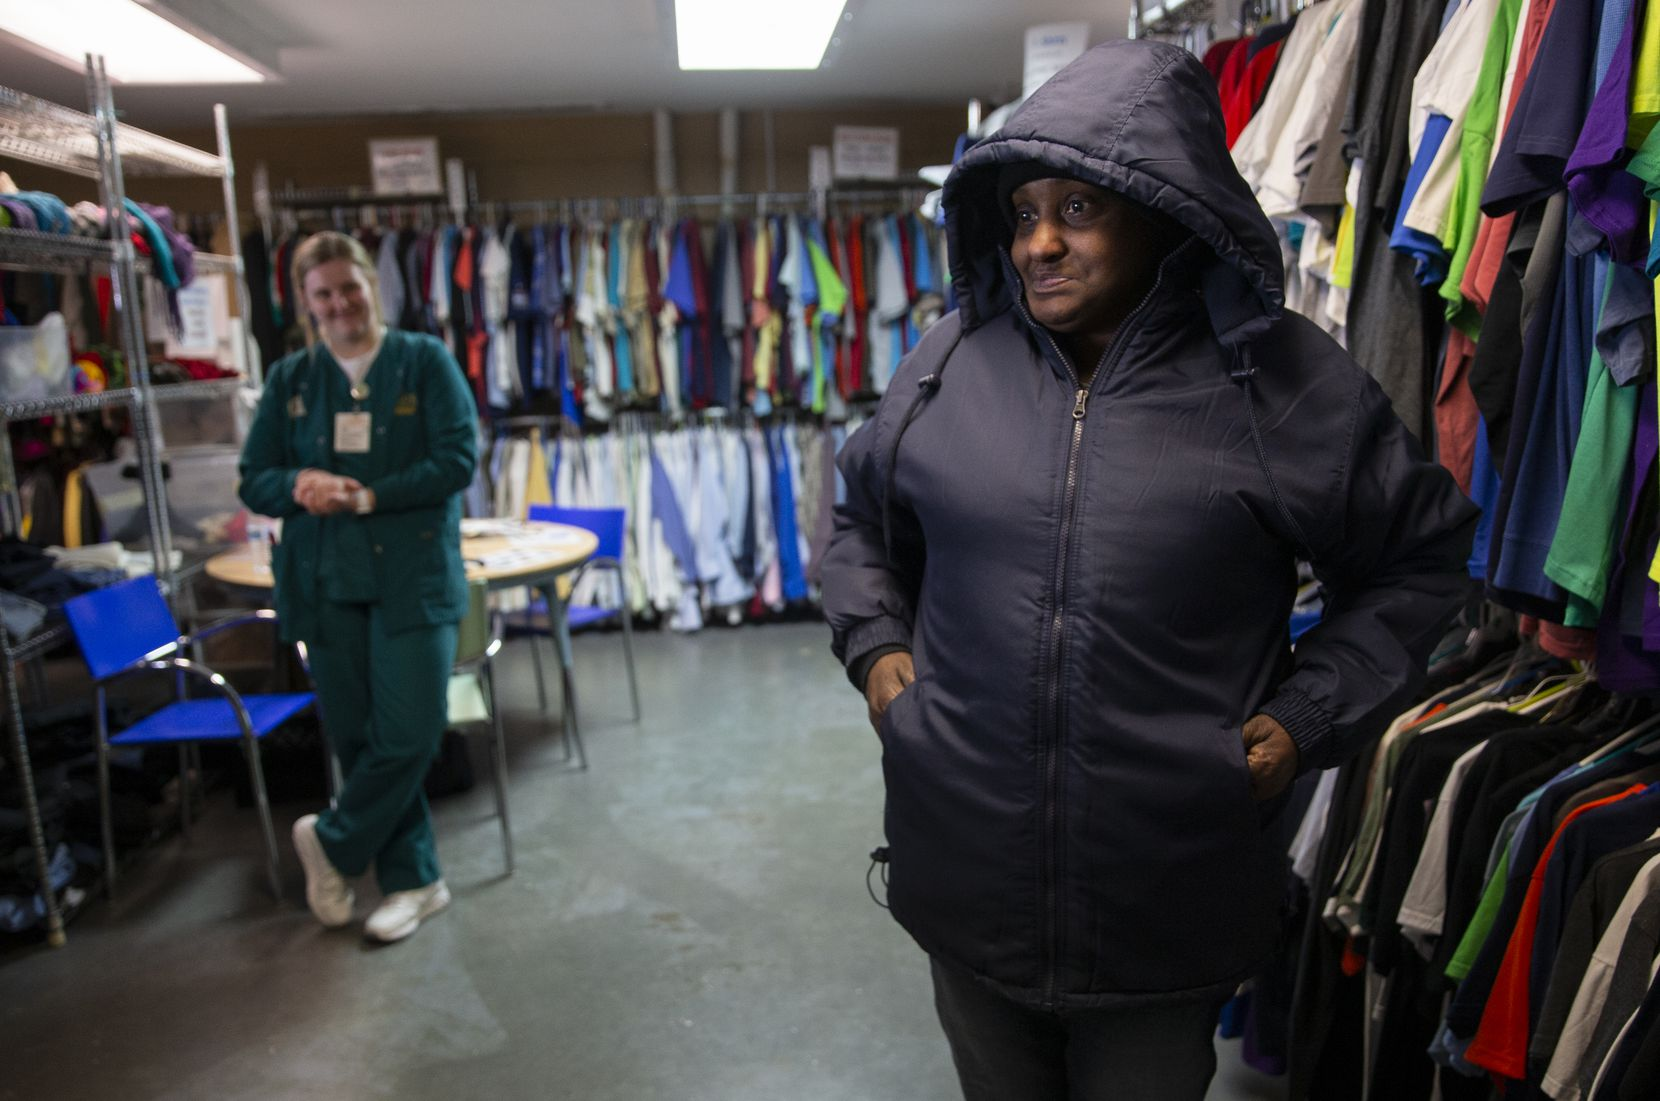 Cecelia Nash (right) tried on a new jacket at the Cornerstone Baptist Church's Clothes Closet on Dec. 5, 2019 in Dallas. Cornerstone Community Development Corp. was one of 23 nonprofits that received funds from The Dallas Morning News Charities campaign.